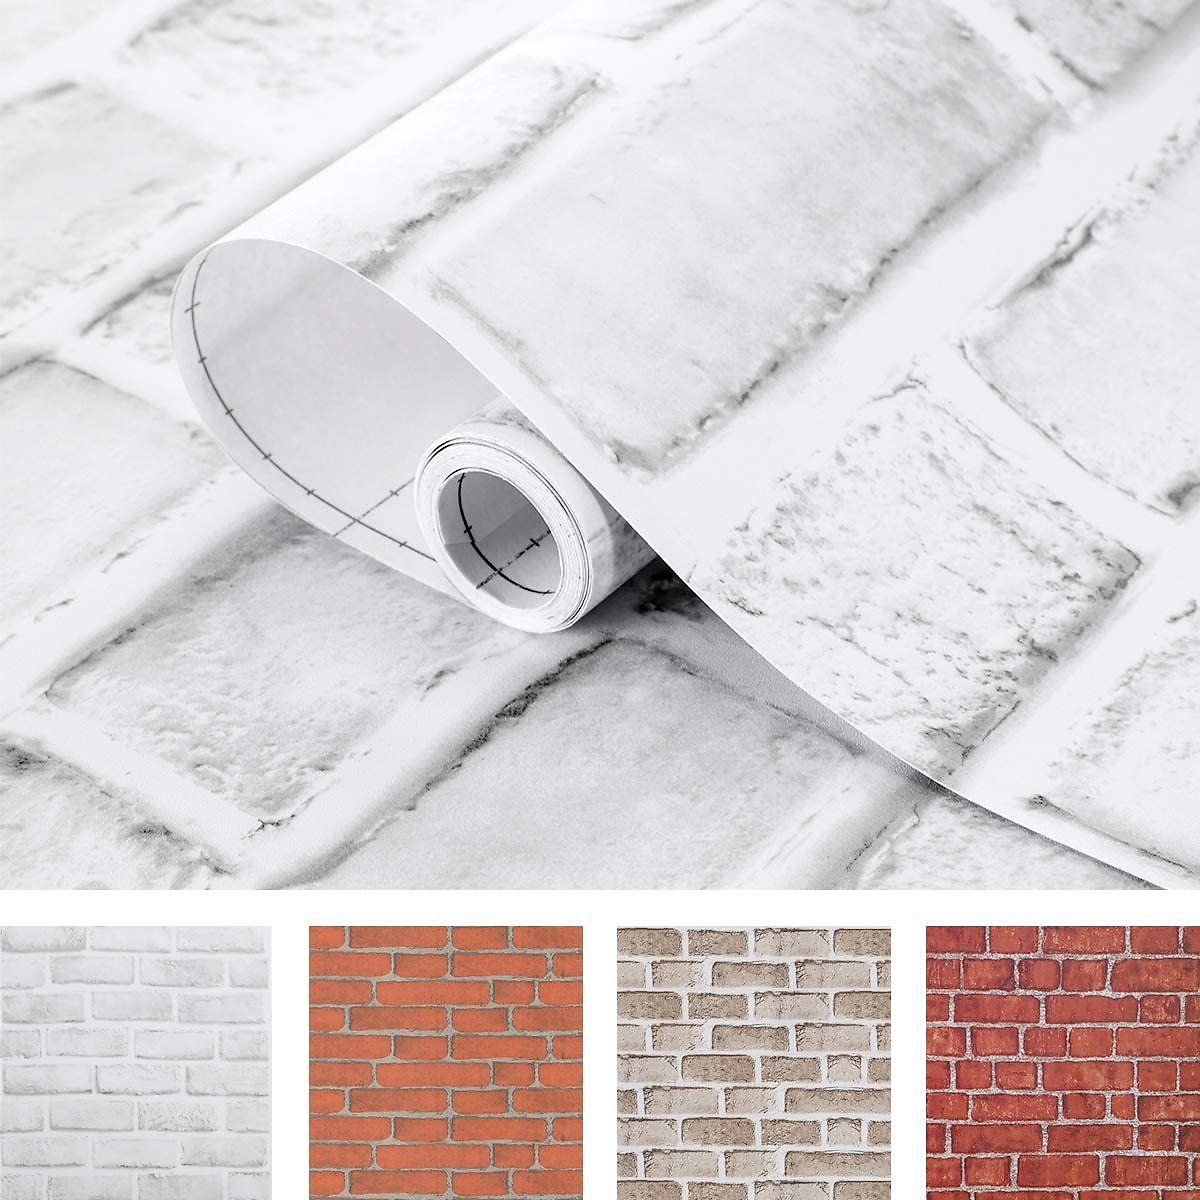 Coavas White Brick Wallpaper 17.7x314.9 Inches Self-Adhesive Peel and Stick Paper Christmas Decorative Faux Brick Printed Stick